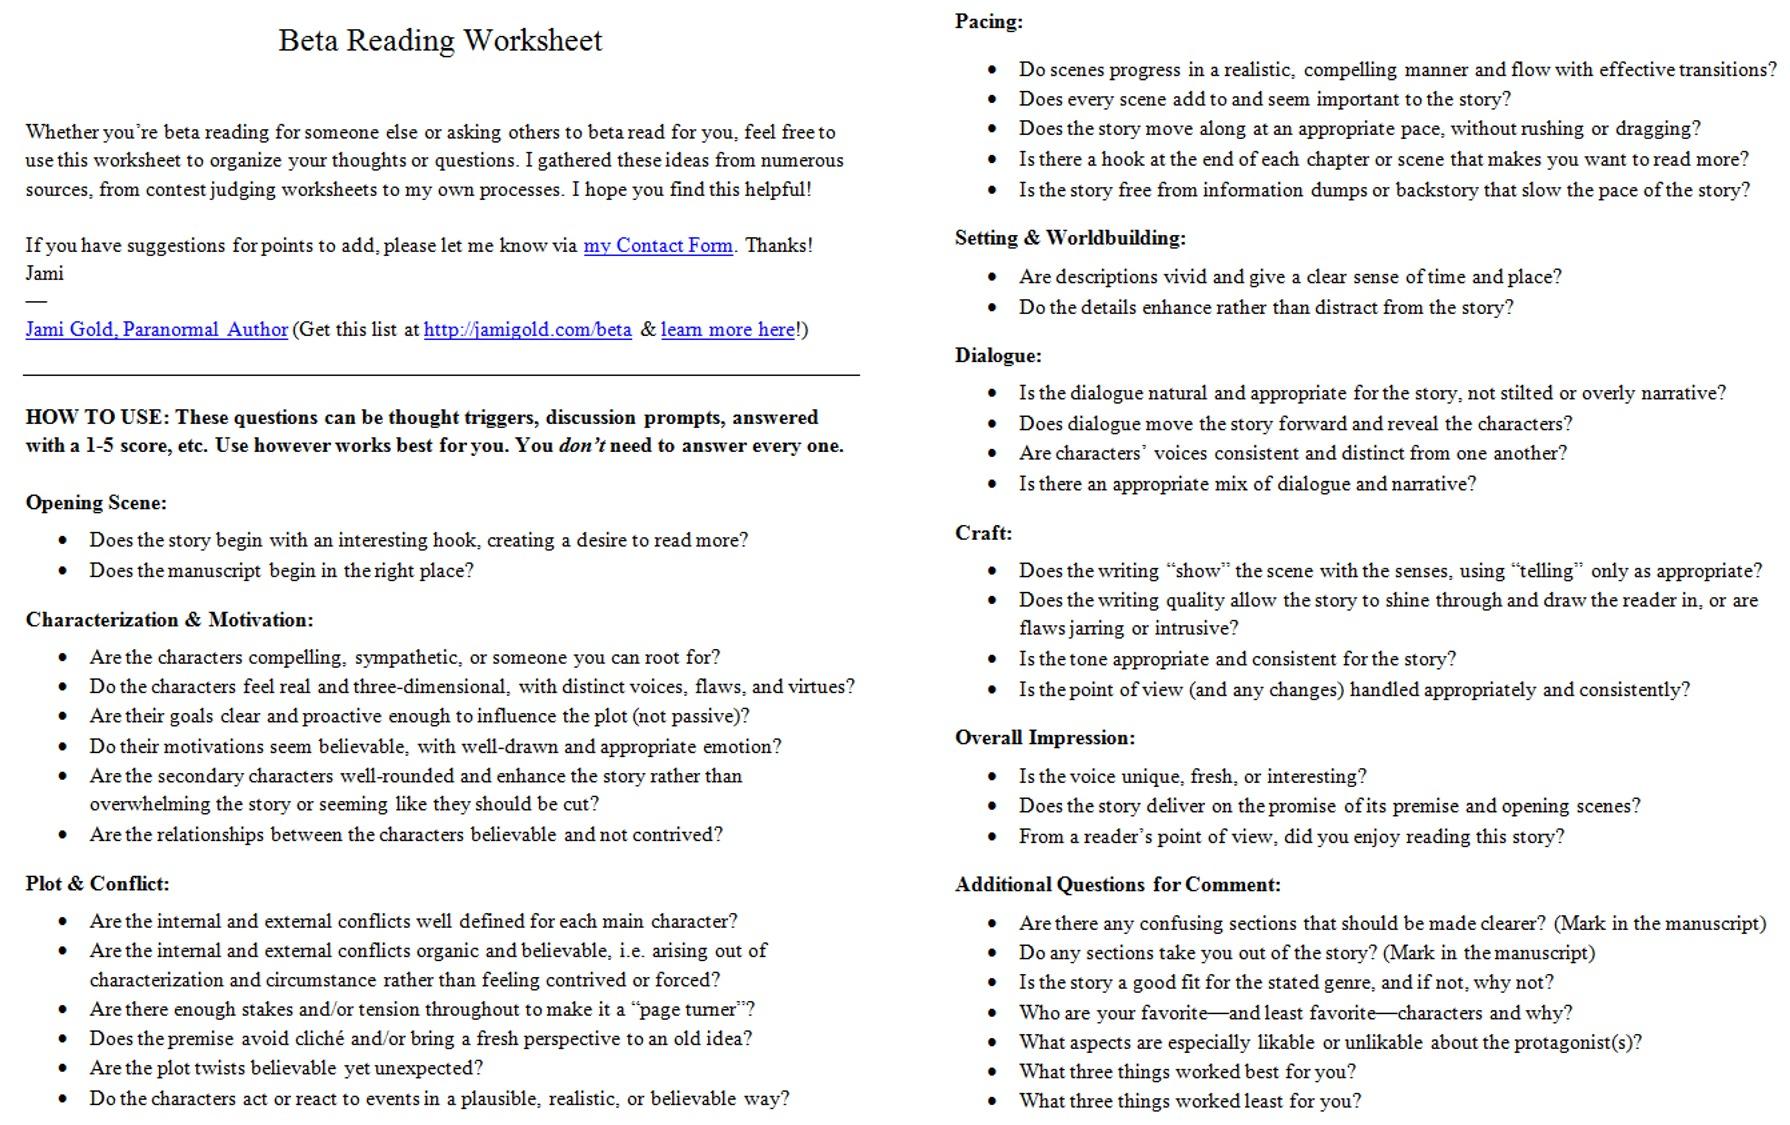 Weirdmailus  Prepossessing Worksheets For Writers  Jami Gold Paranormal Author With Extraordinary Screen Shot Of The Twopage Beta Reading Worksheet With Beauteous Irregular Adjectives Worksheet Also The Skeletal System Worksheets In Addition Little Red Hen Worksheet And Free Printable Daily Oral Language Worksheets As Well As Action Reaction Worksheet Additionally Multiplication And Division Of Decimals Worksheets From Jamigoldcom With Weirdmailus  Extraordinary Worksheets For Writers  Jami Gold Paranormal Author With Beauteous Screen Shot Of The Twopage Beta Reading Worksheet And Prepossessing Irregular Adjectives Worksheet Also The Skeletal System Worksheets In Addition Little Red Hen Worksheet From Jamigoldcom